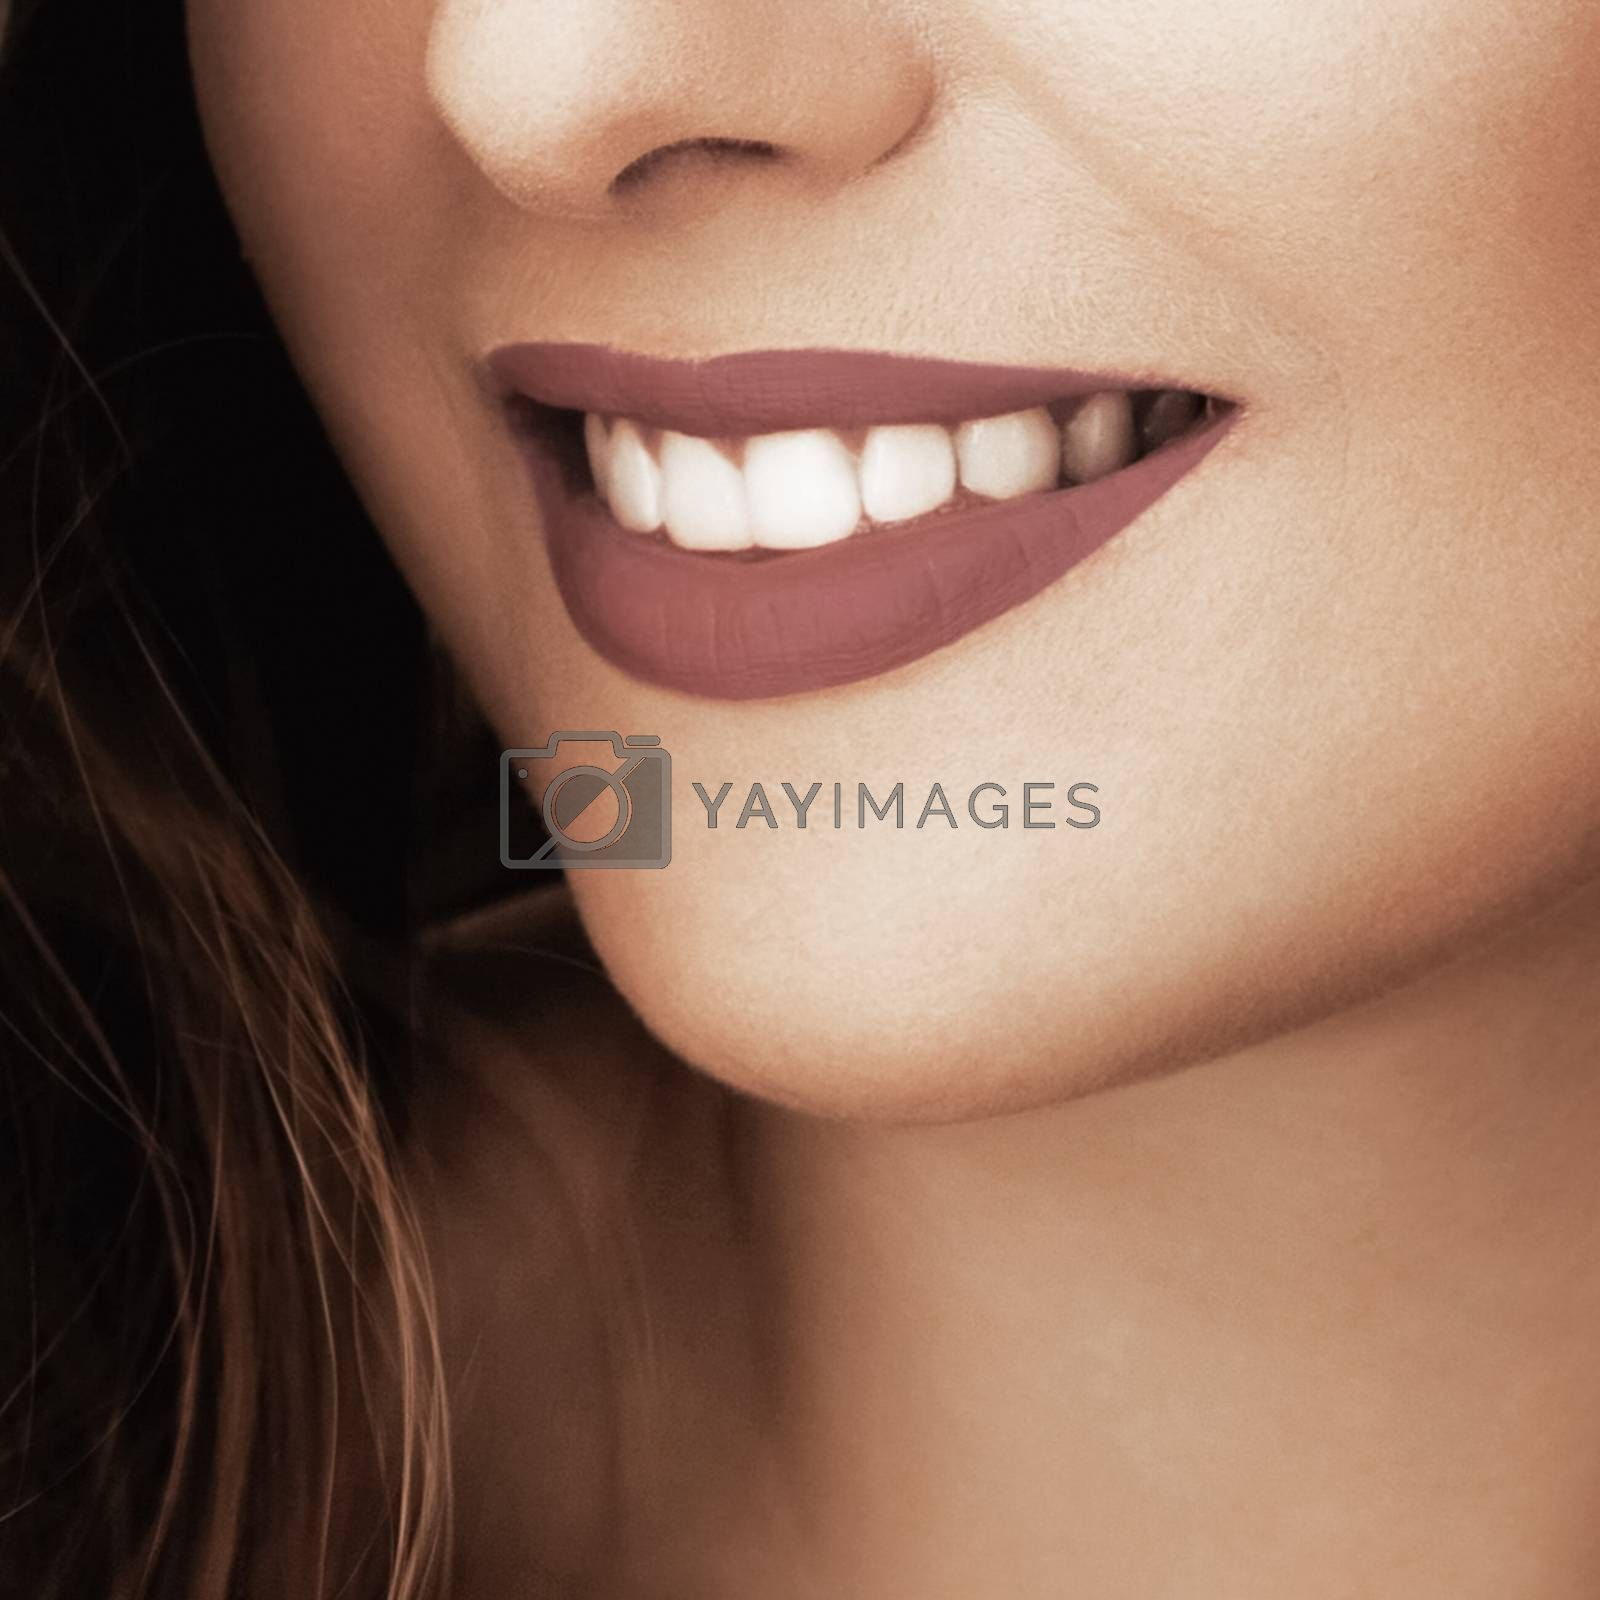 Happy healthy female smile with perfect natural white teeth, beauty face closeup of smiling young woman, bright lipstick makeup and clean skin for dental and healthcare brands